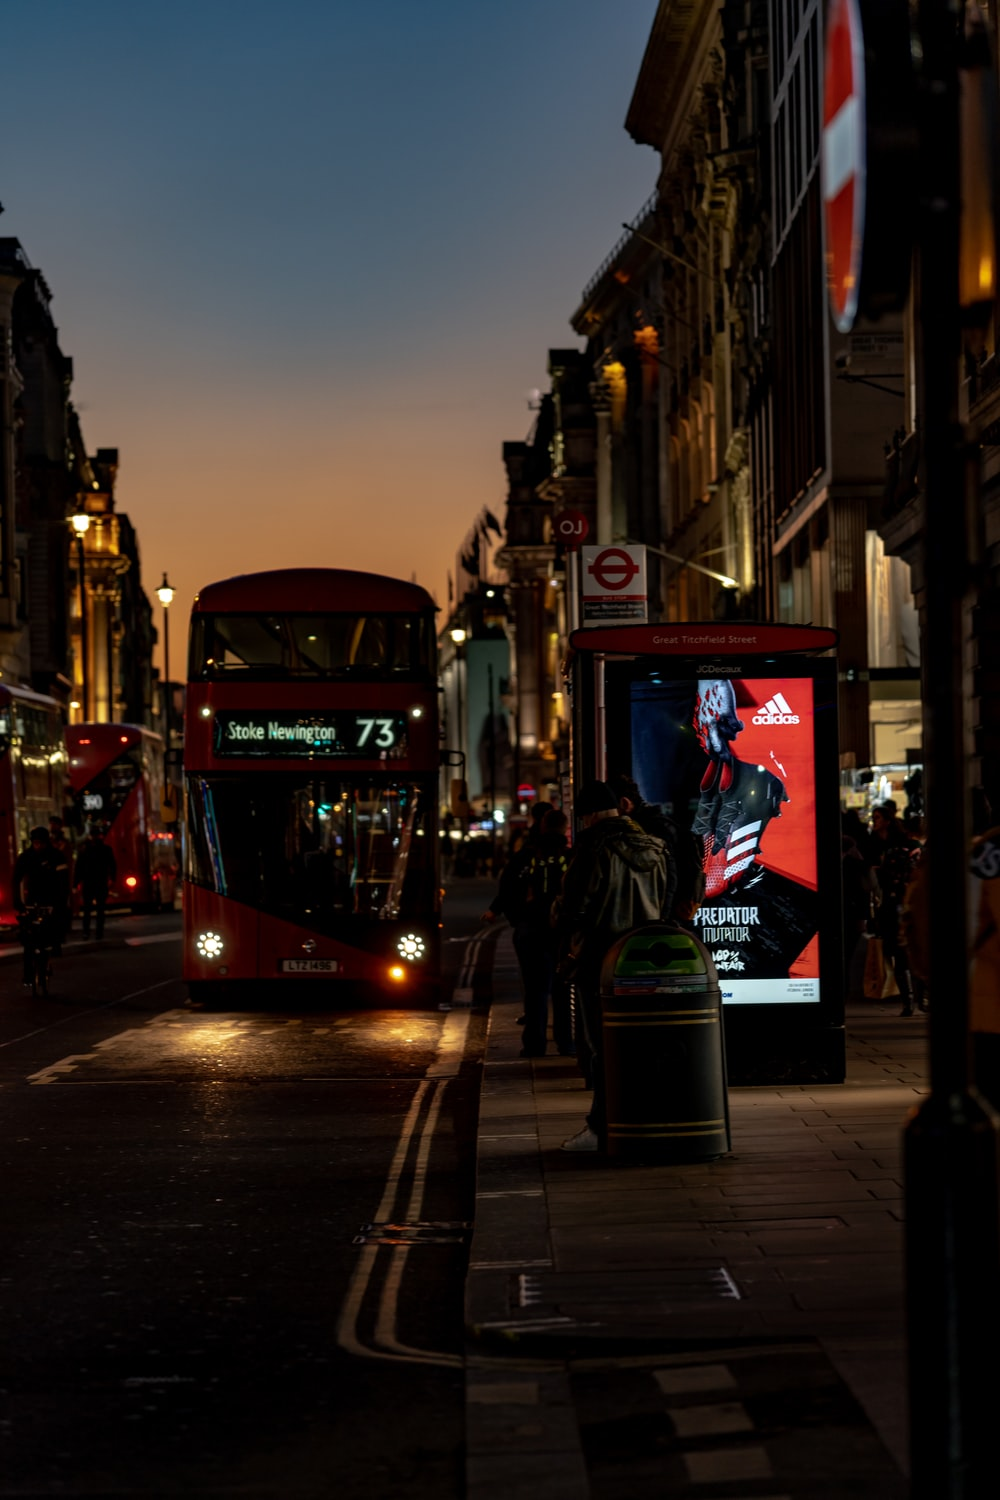 red and black tram on the street during night time